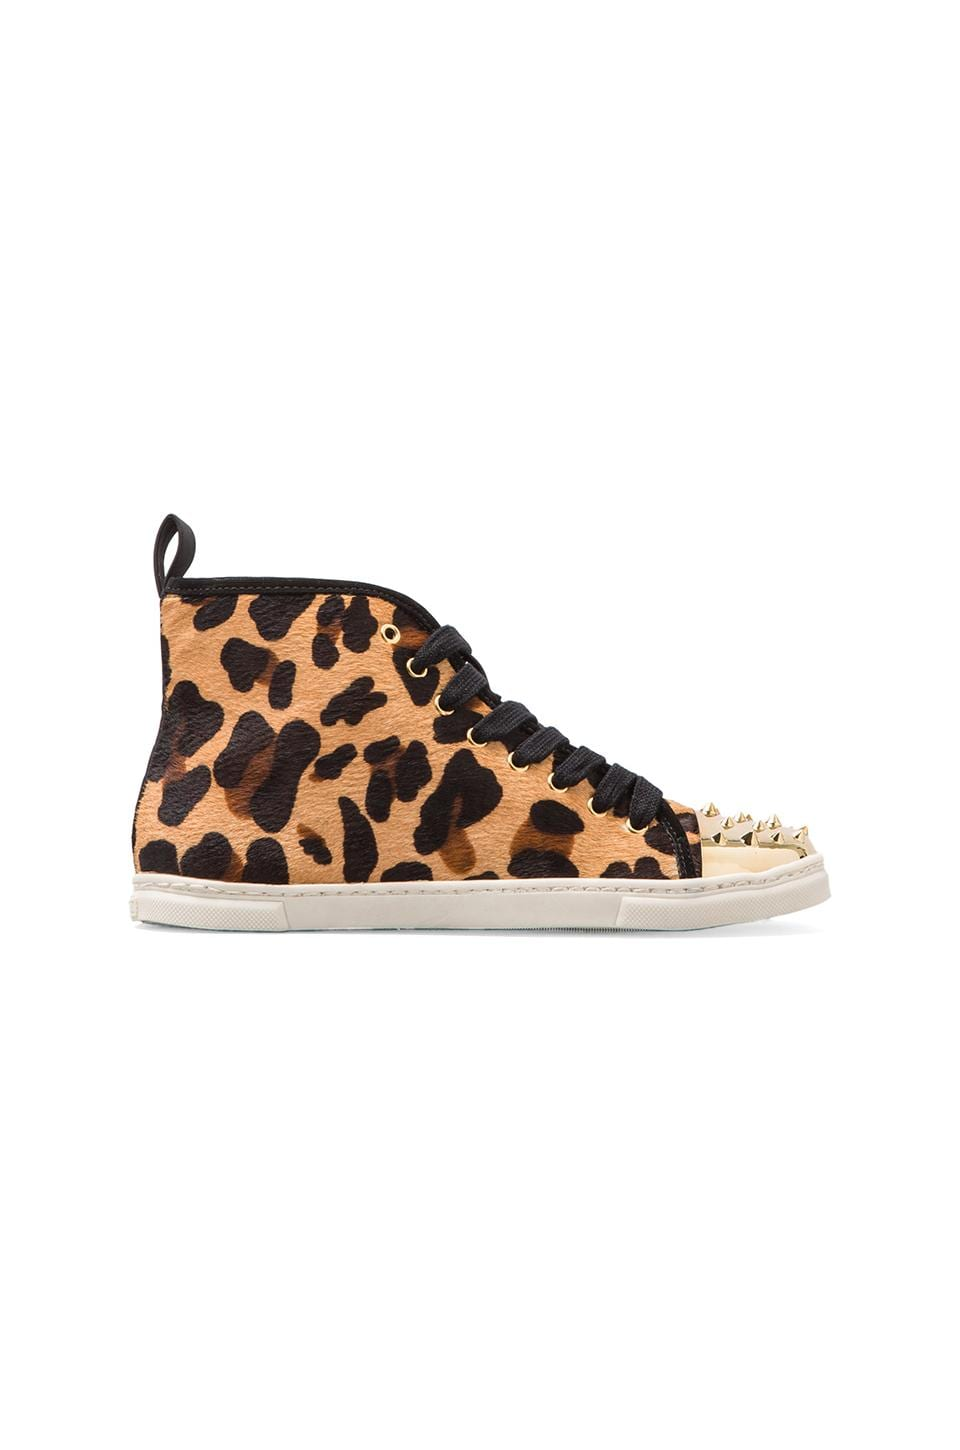 Schutz Aima Sneaker with Calf Fur in Natural/Black